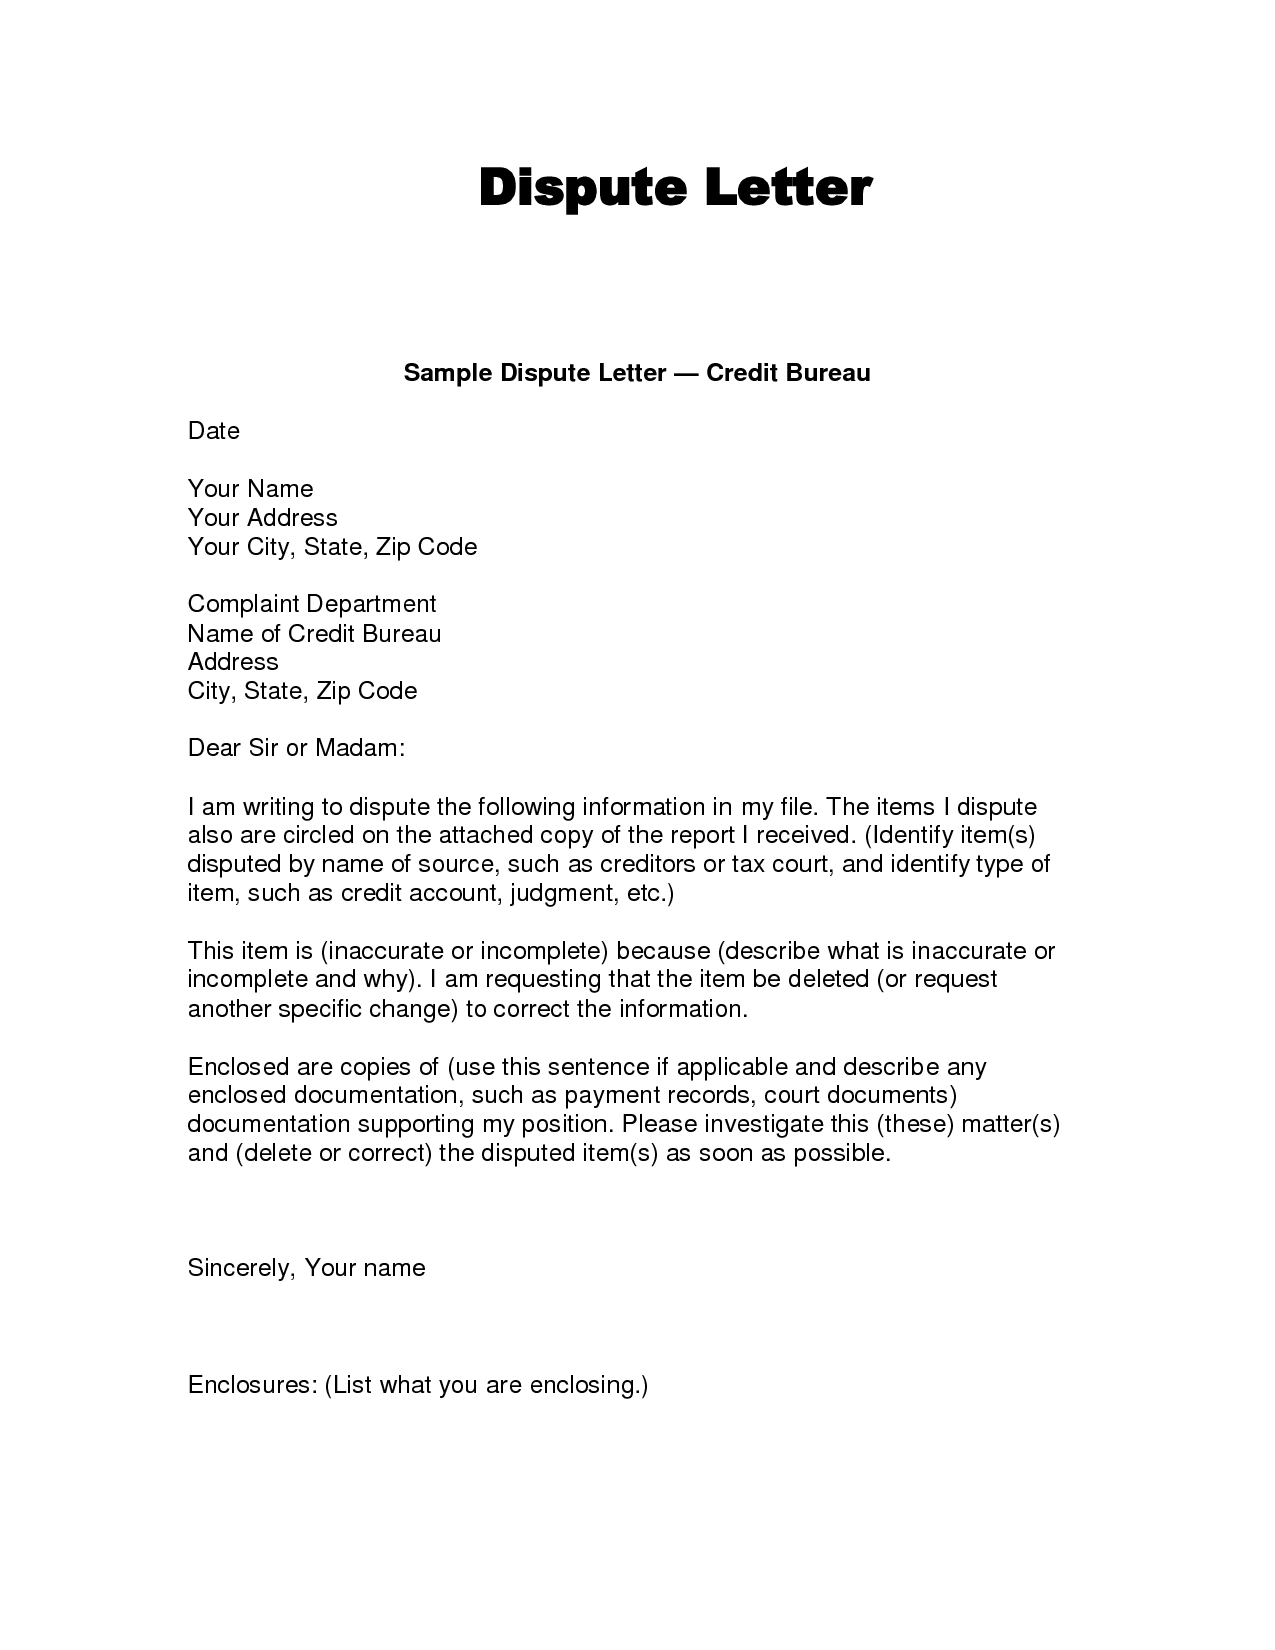 Letter Template to Dispute Credit Report - Credit Dispute Letter Templates Acurnamedia